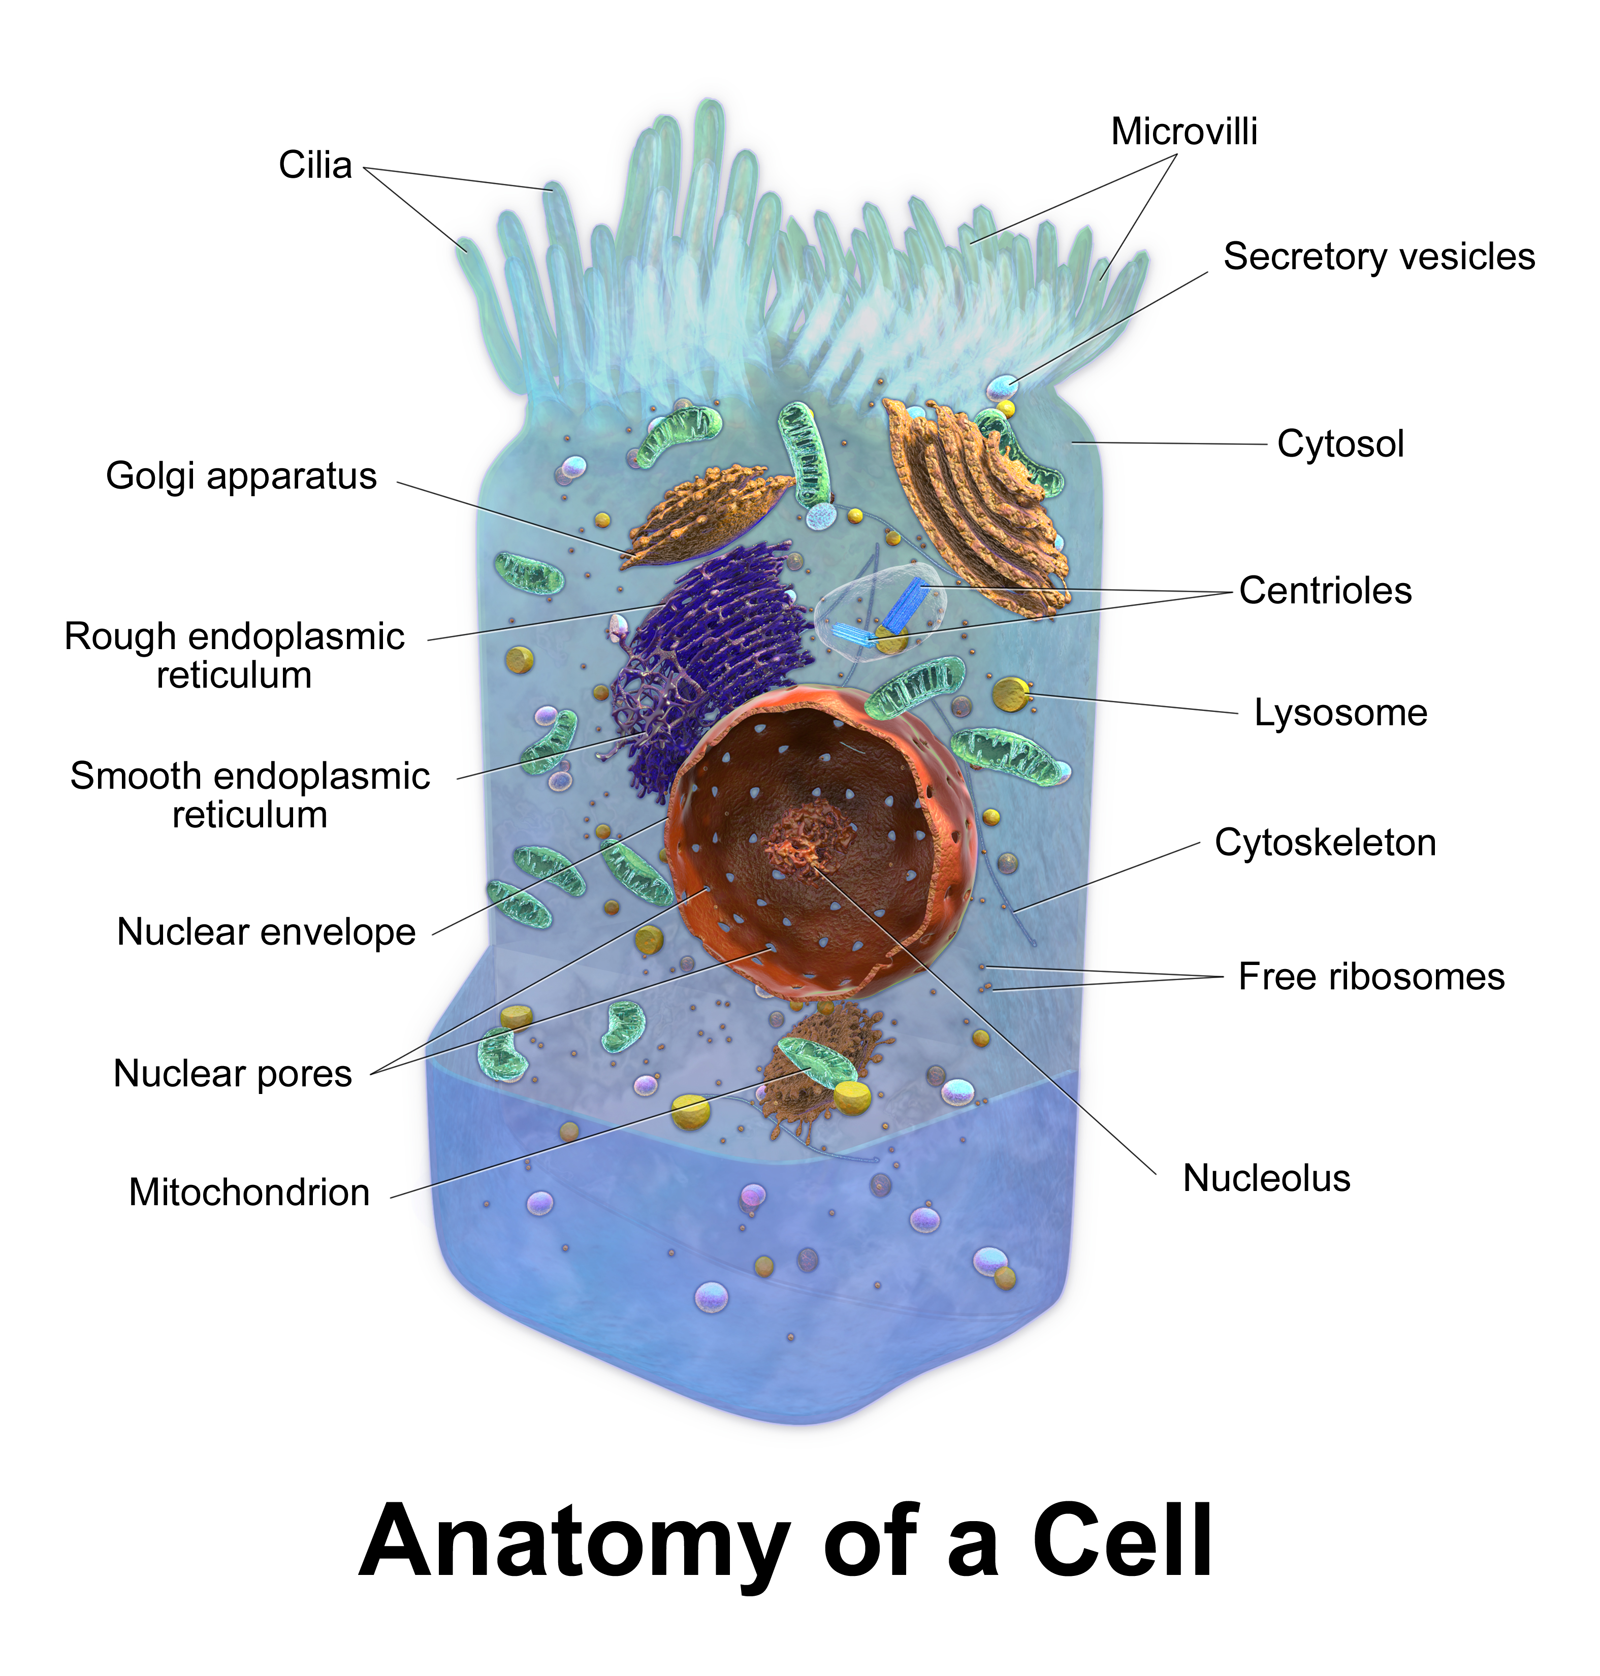 Animal cell model diagram project parts structure labeled coloring animal cell model diagram project parts structure labeled coloring and plant cell organelles cake parts of an animal cell animal cell model diagram project publicscrutiny Image collections